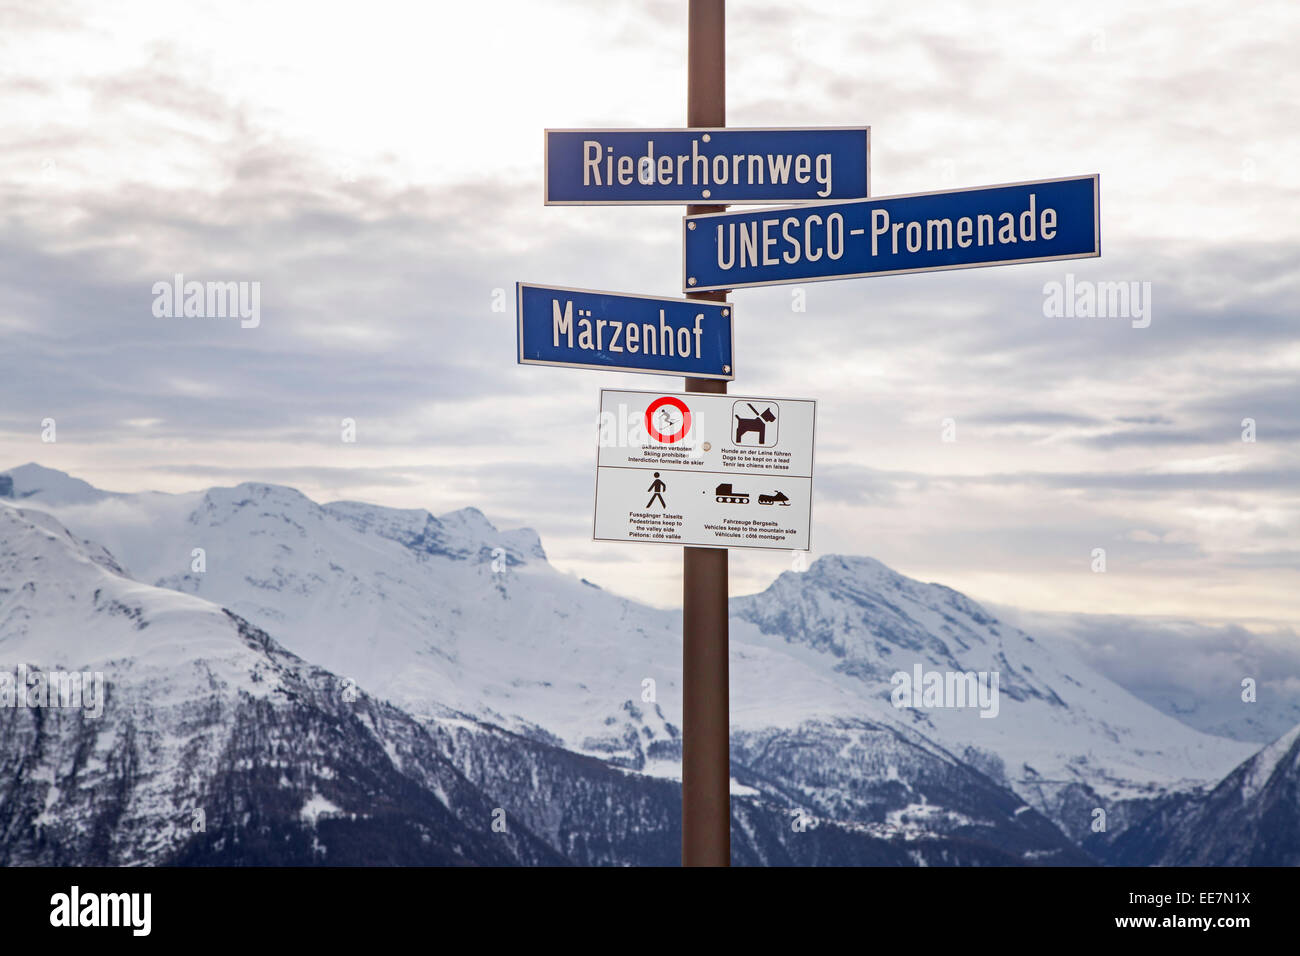 Signpost and warning sign in the Swiss Alps near Riederalp, Wallis / Valais, Switzerland - Stock Image